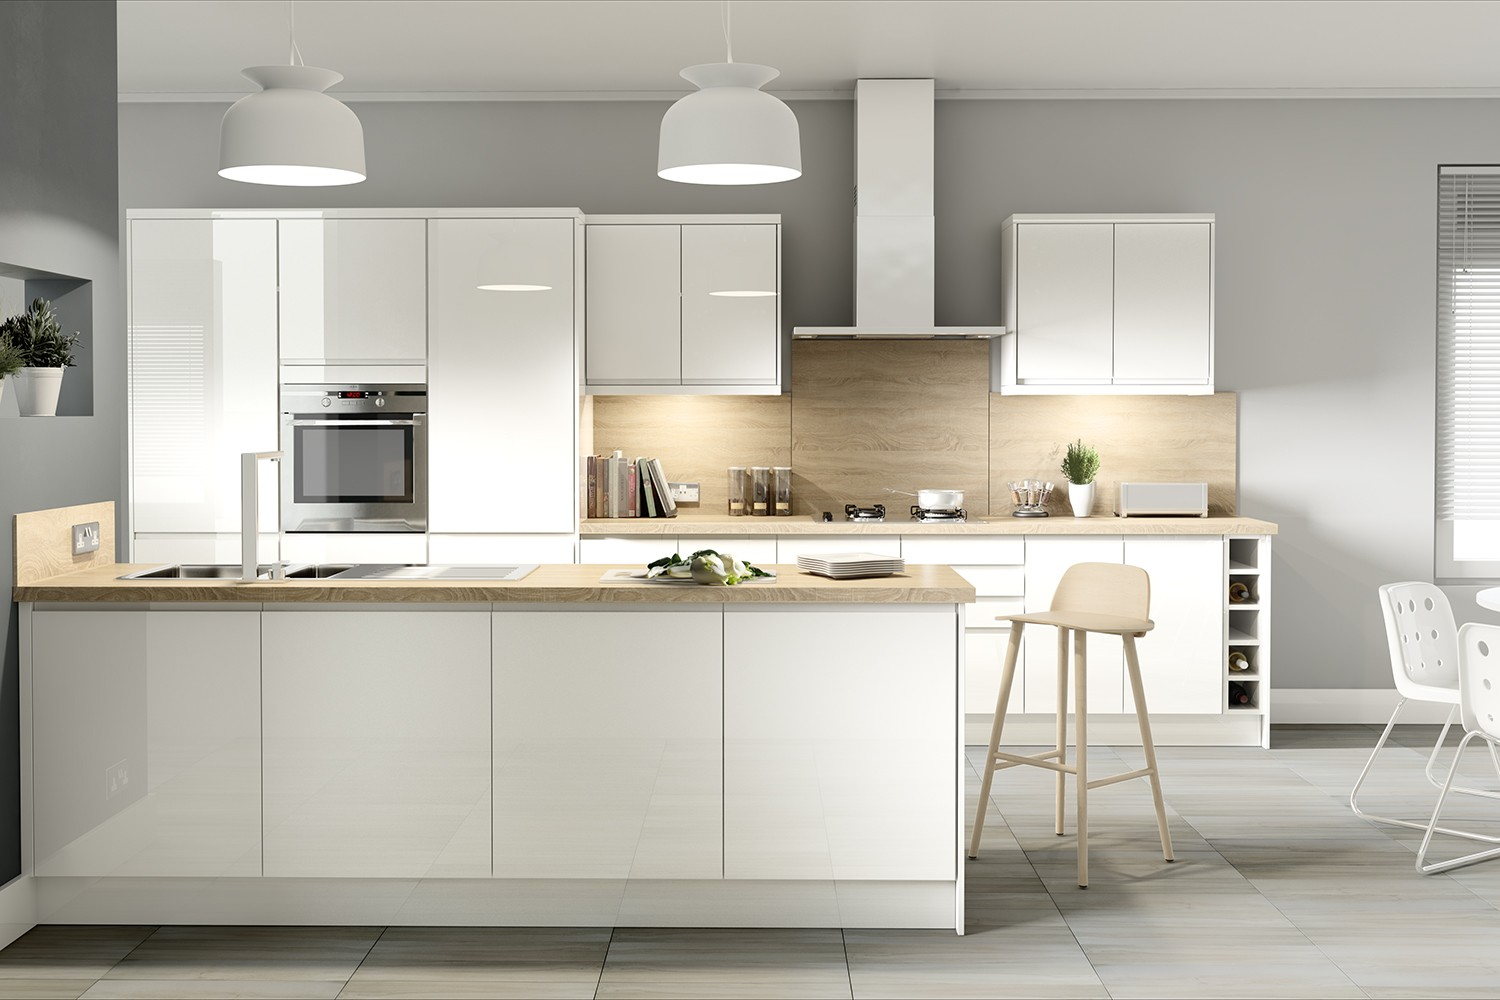 Customize commercial kitchen cabinet design from Foshan factory